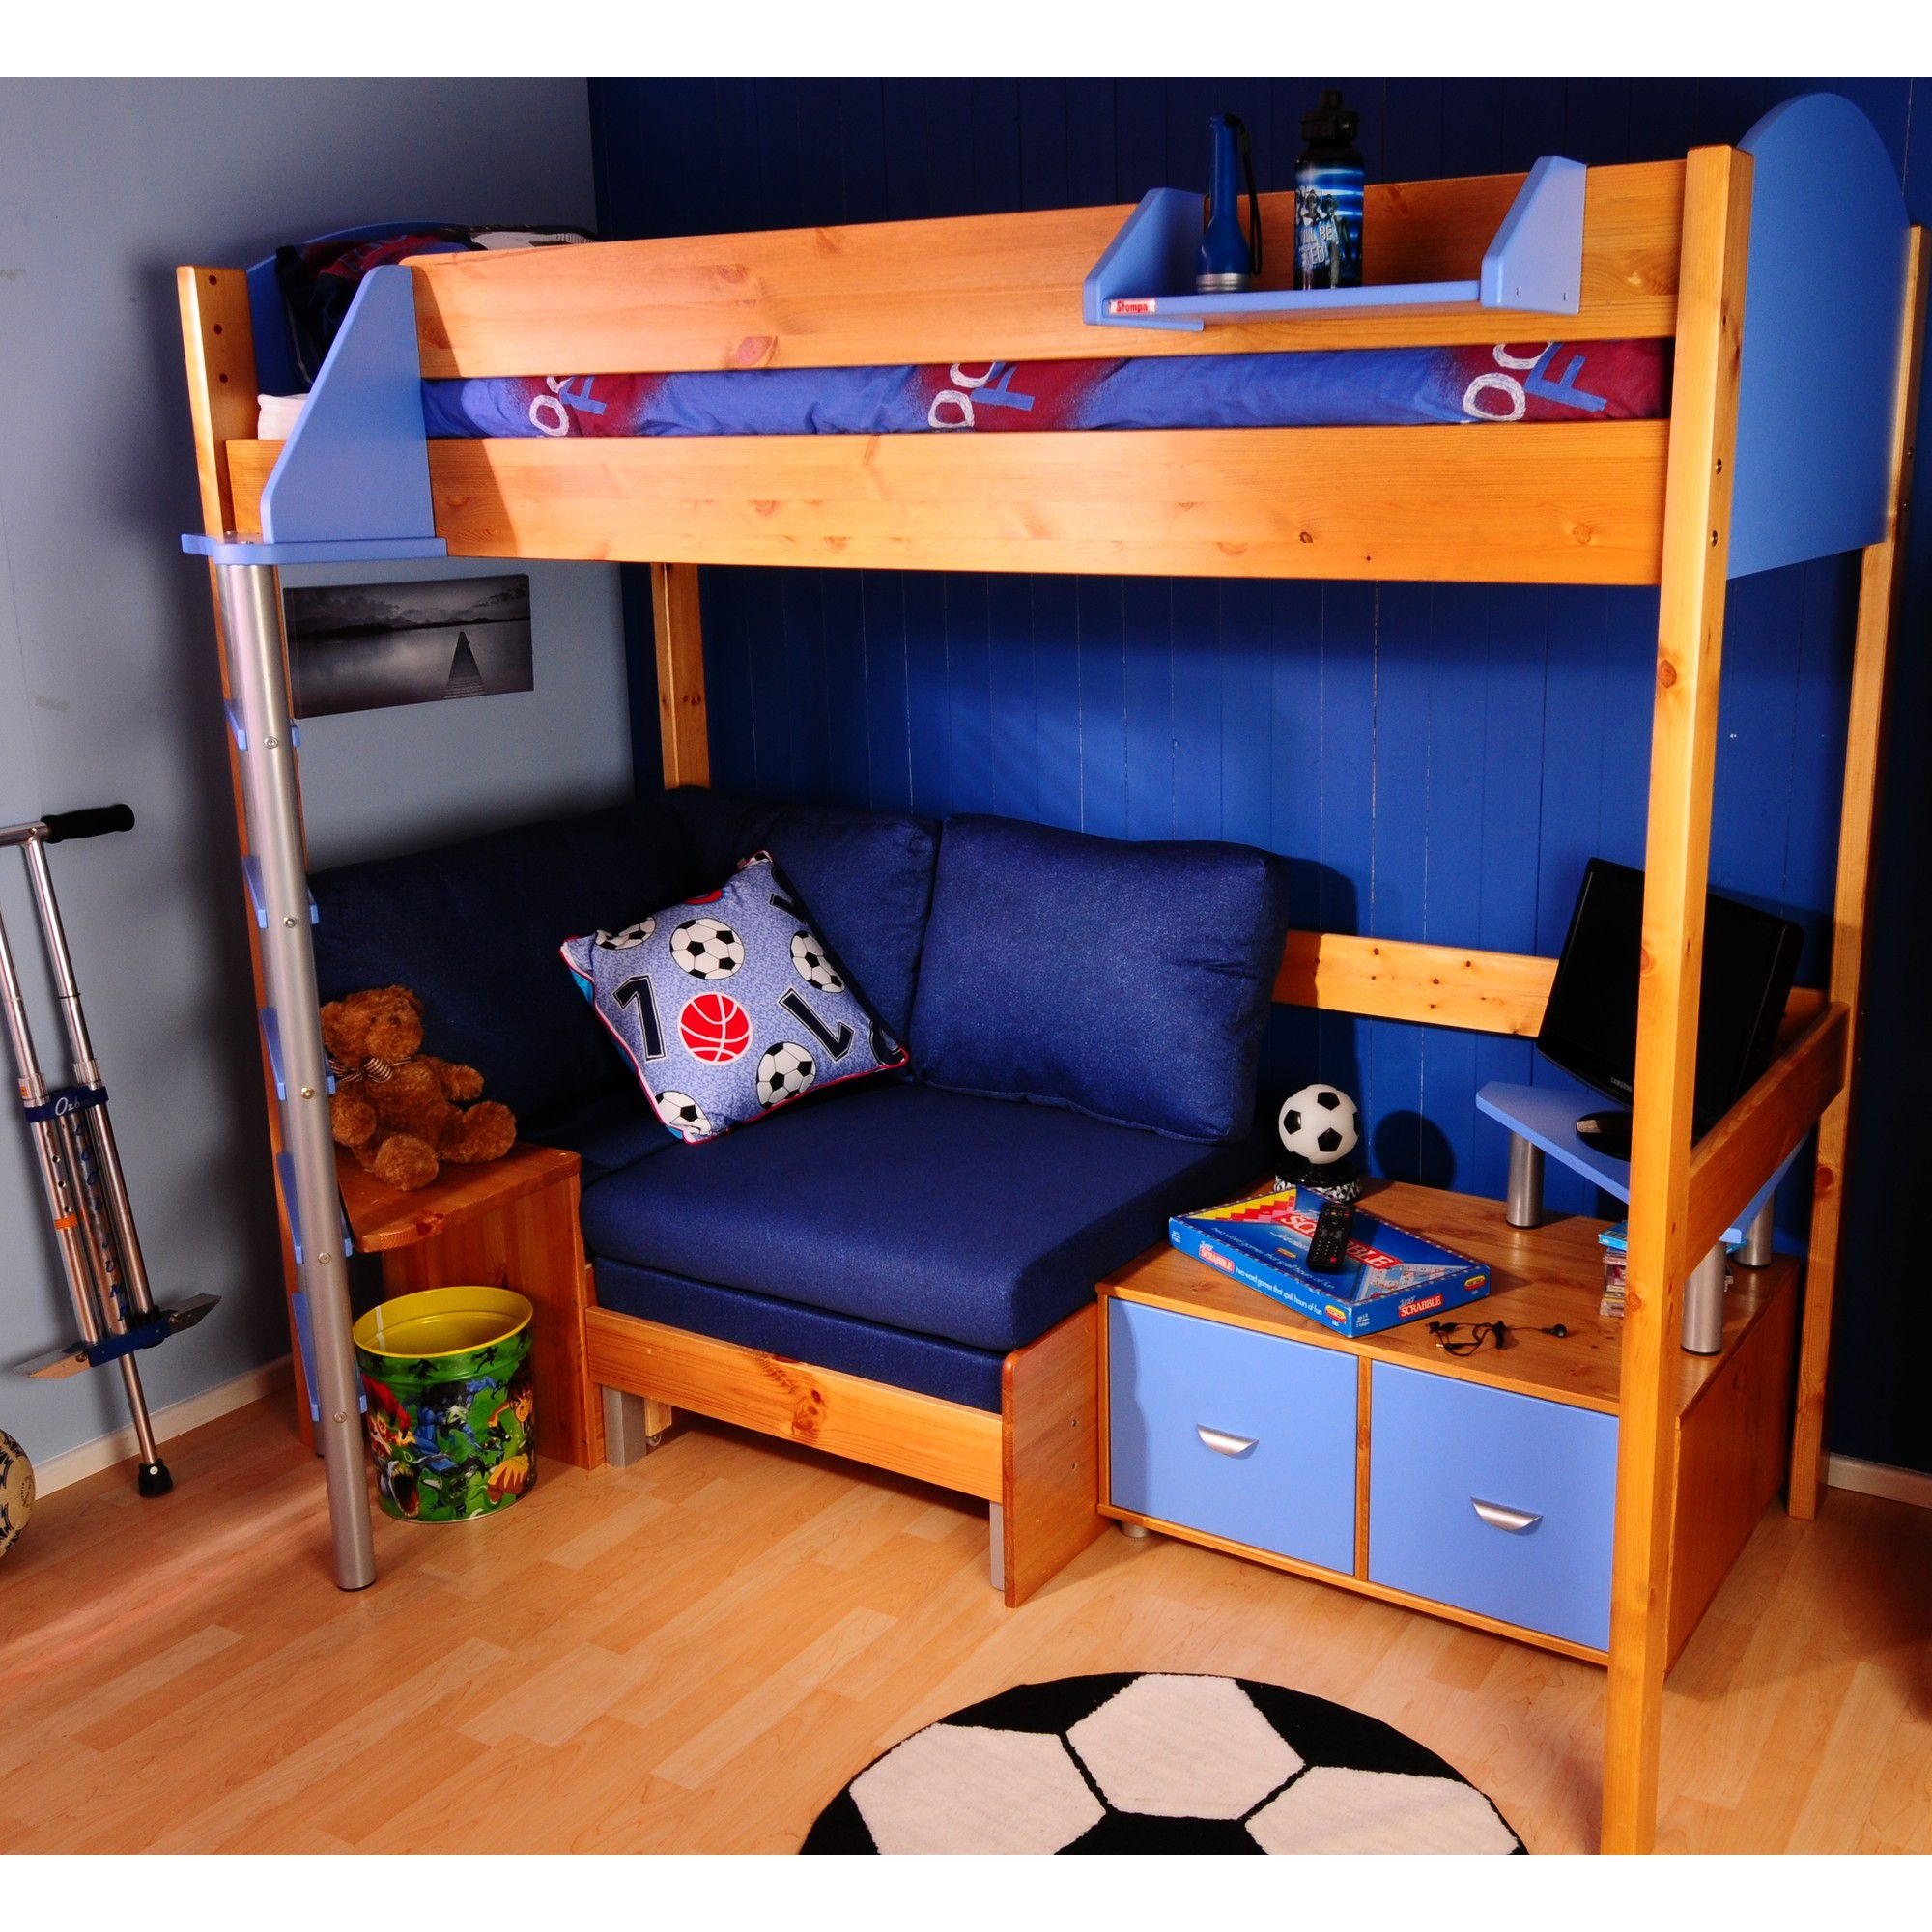 Stompa Casa High Sleeper Sofa Bed with 2 Cube Unit and TV Stand - Antique - Blue - Blue Denim at Tesco Direct